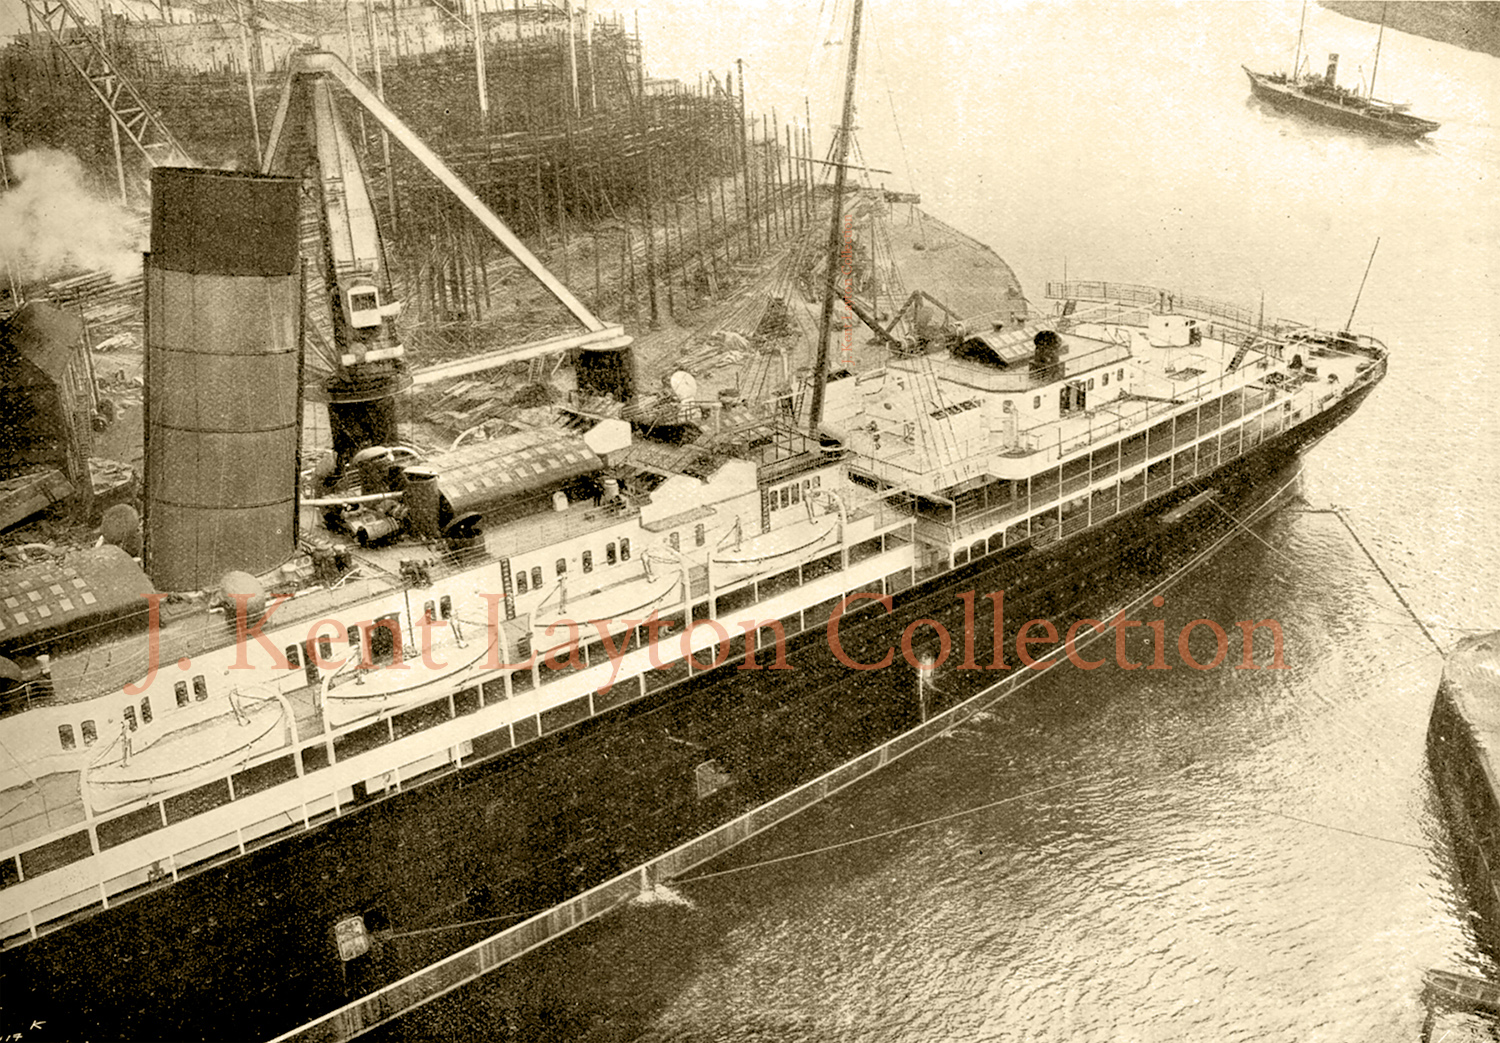 This view, taken from the same spot as the preceding photo, shows the after decks of the Lusitania. (J. Kent Layton Collection)